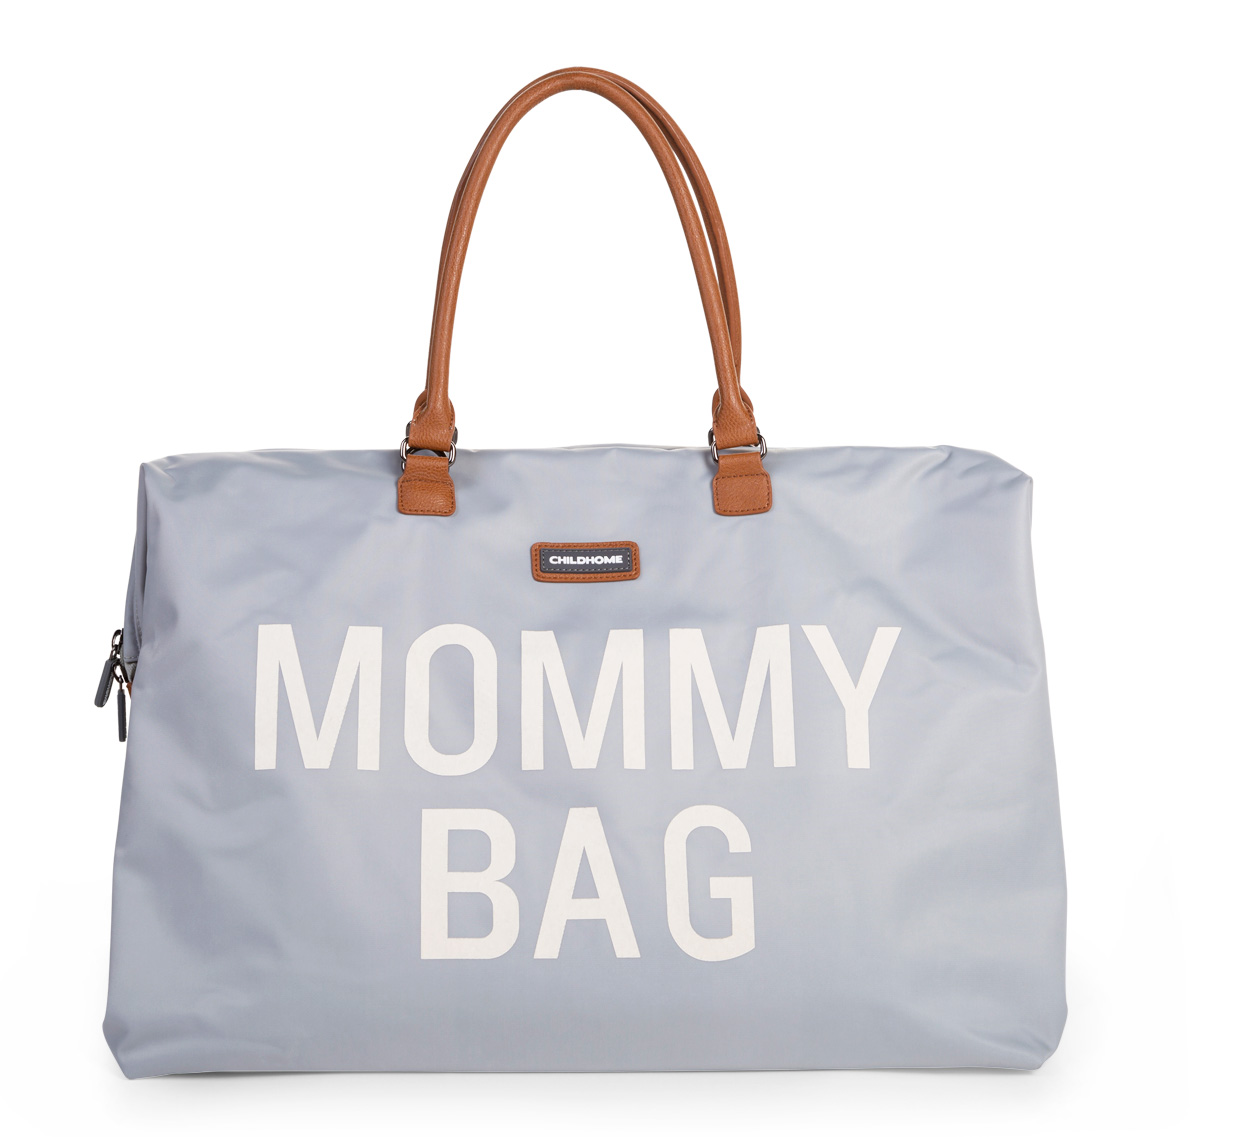 Prebaľovacia taška Mommy Bag Big Grey Off White